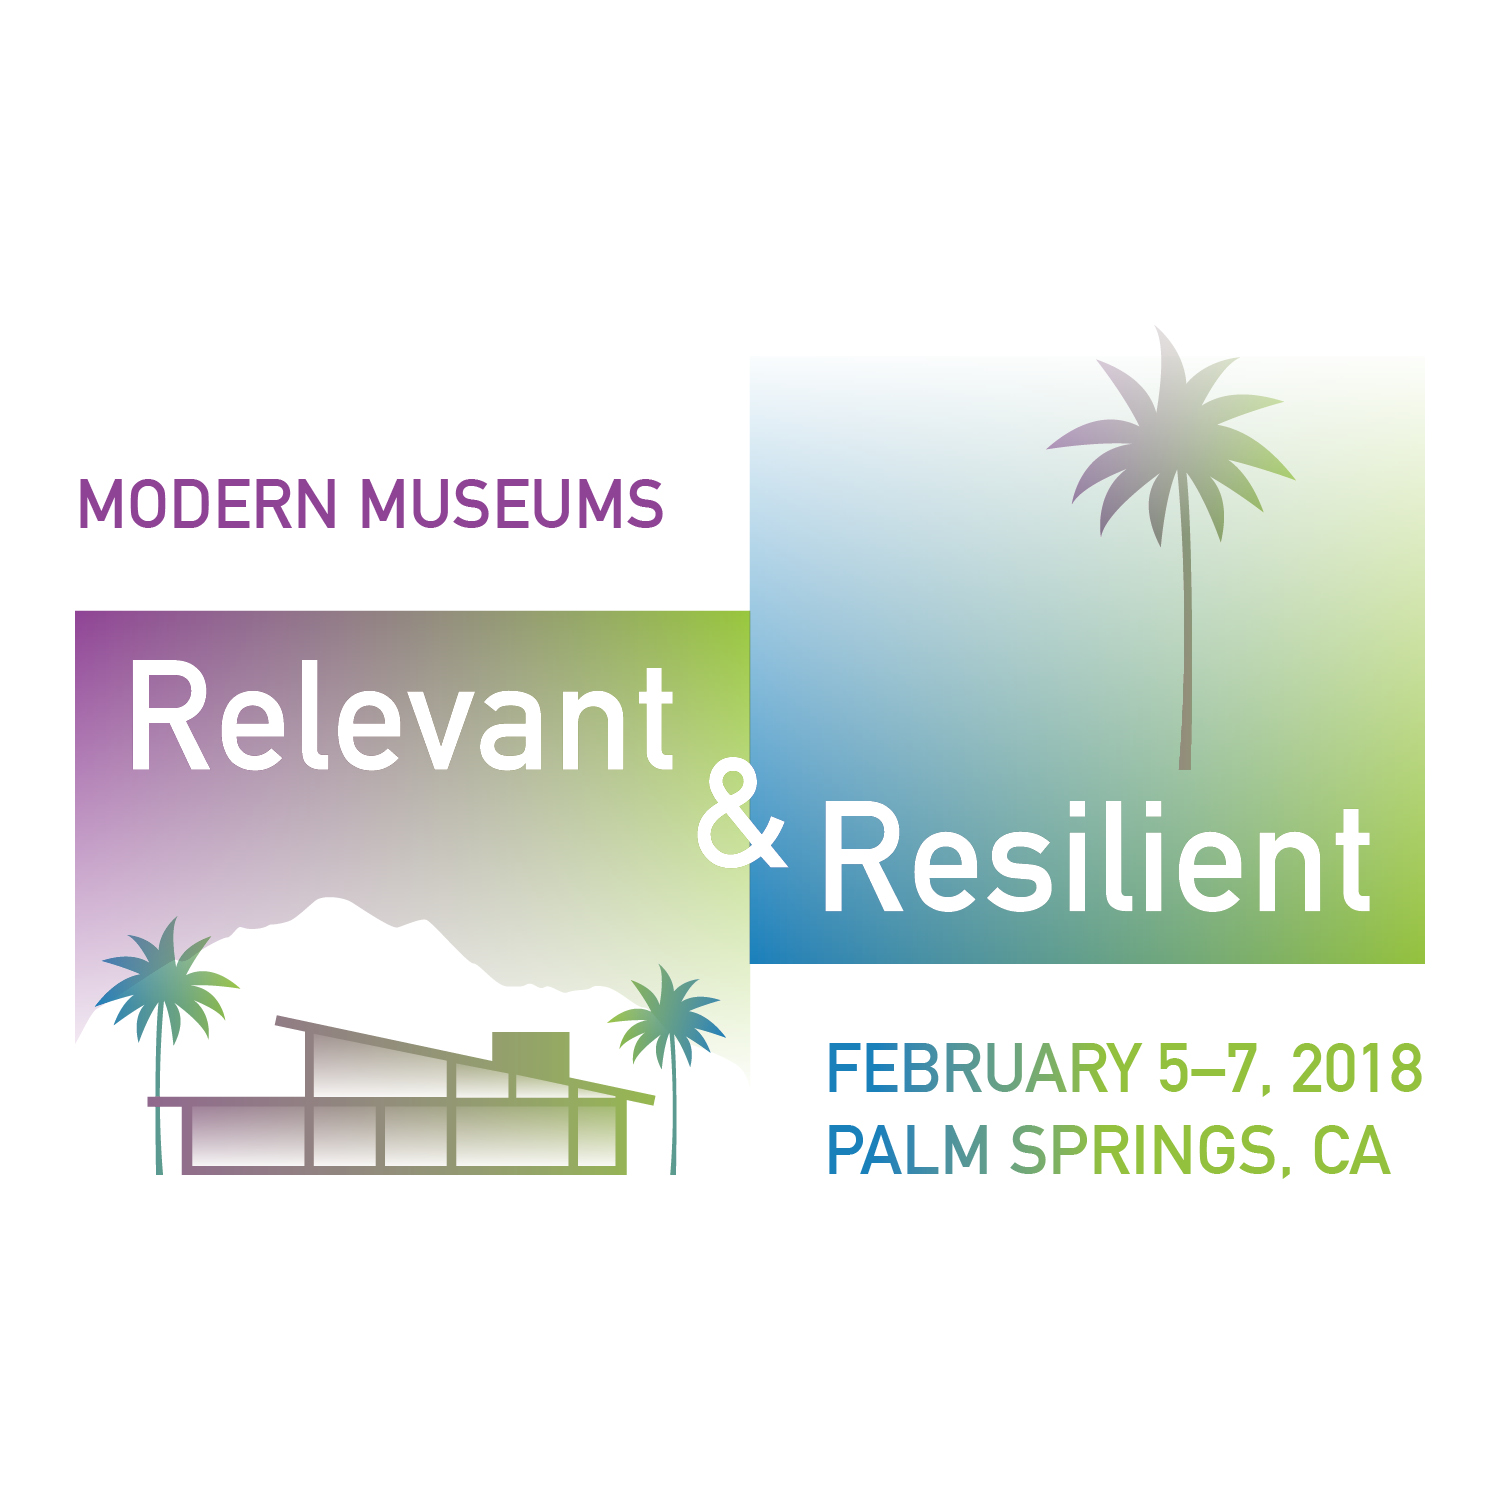 Modern Museums: Relevant & Resilient, CAM 2018